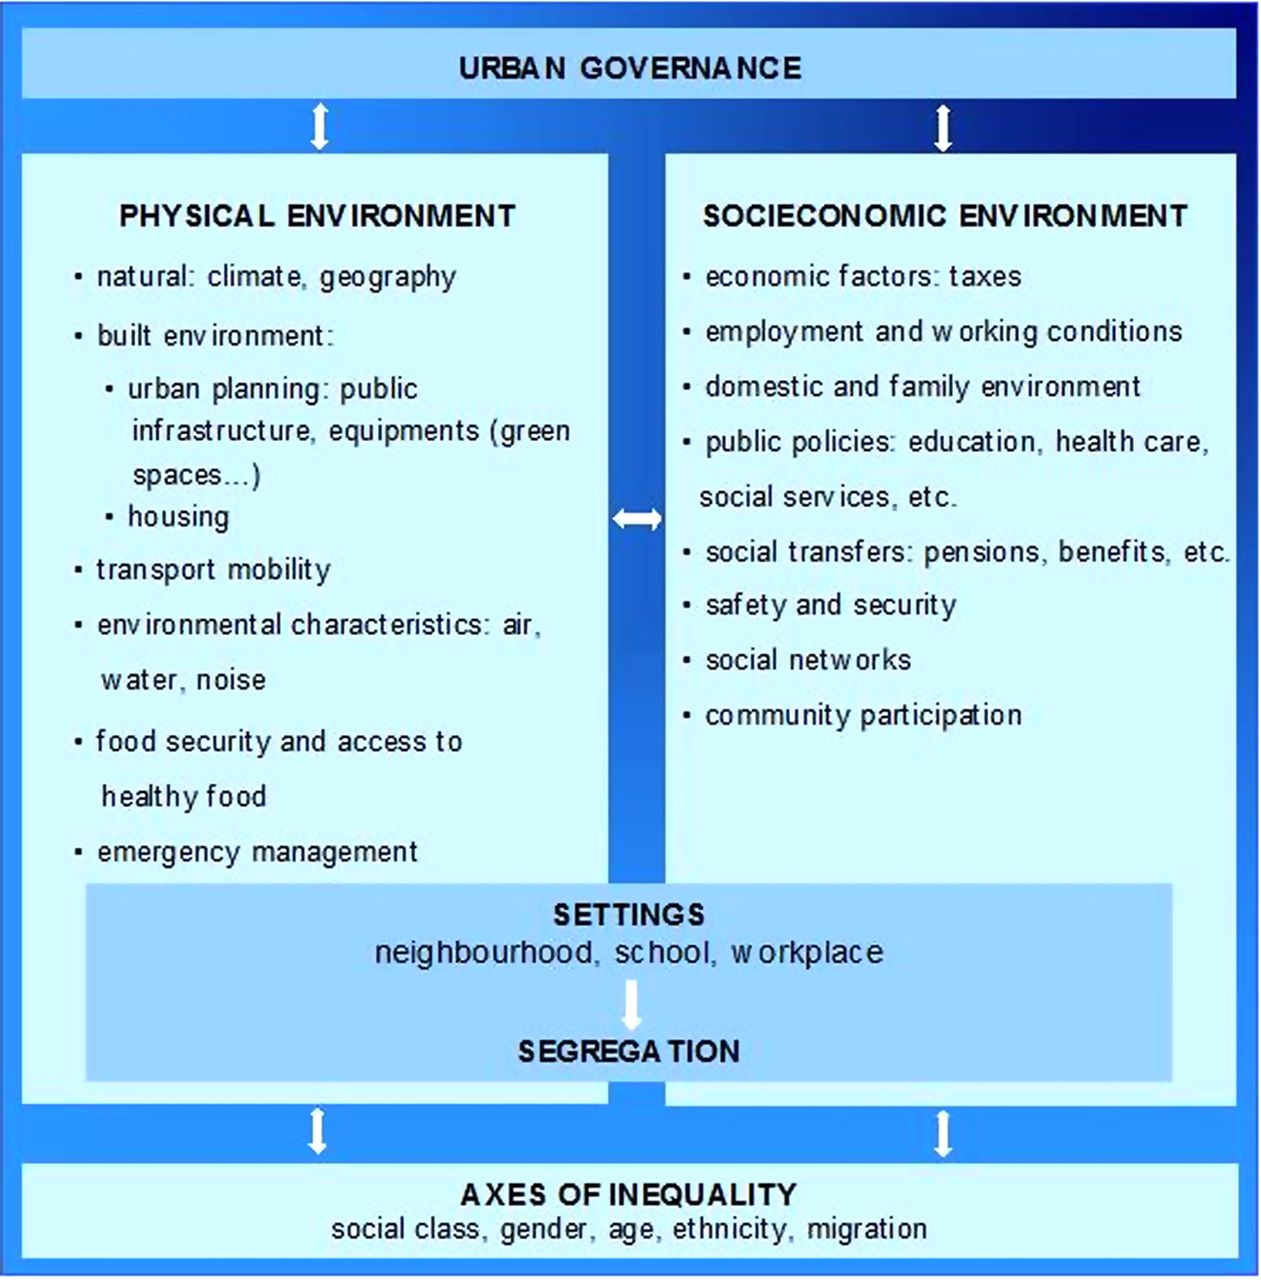 Factors and processes influencing health inequalities in